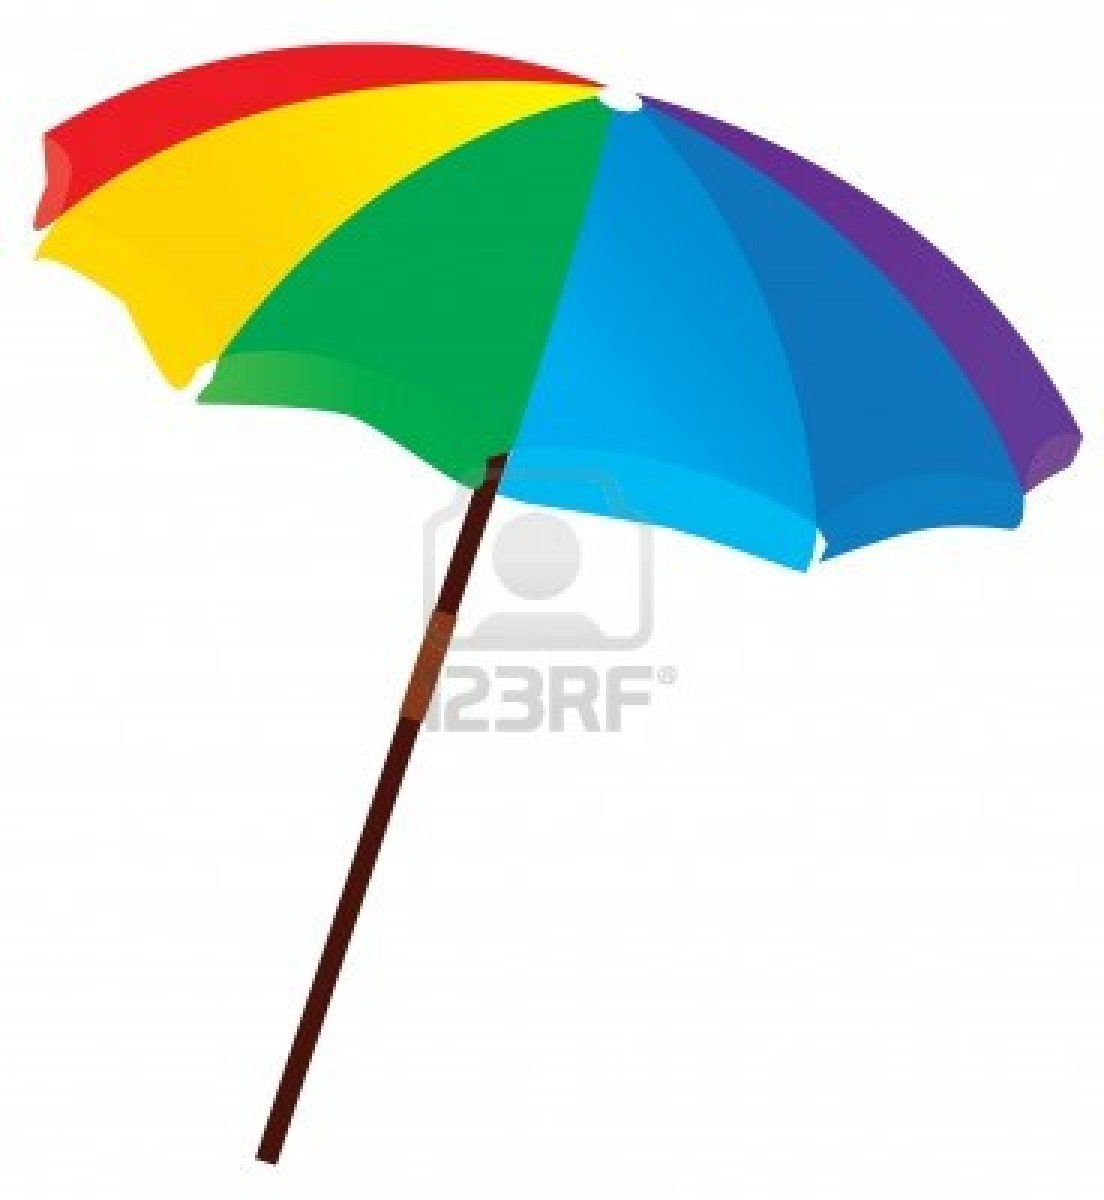 Dropping An Umbrella On The Floor Means That There Will Be A Murder In House